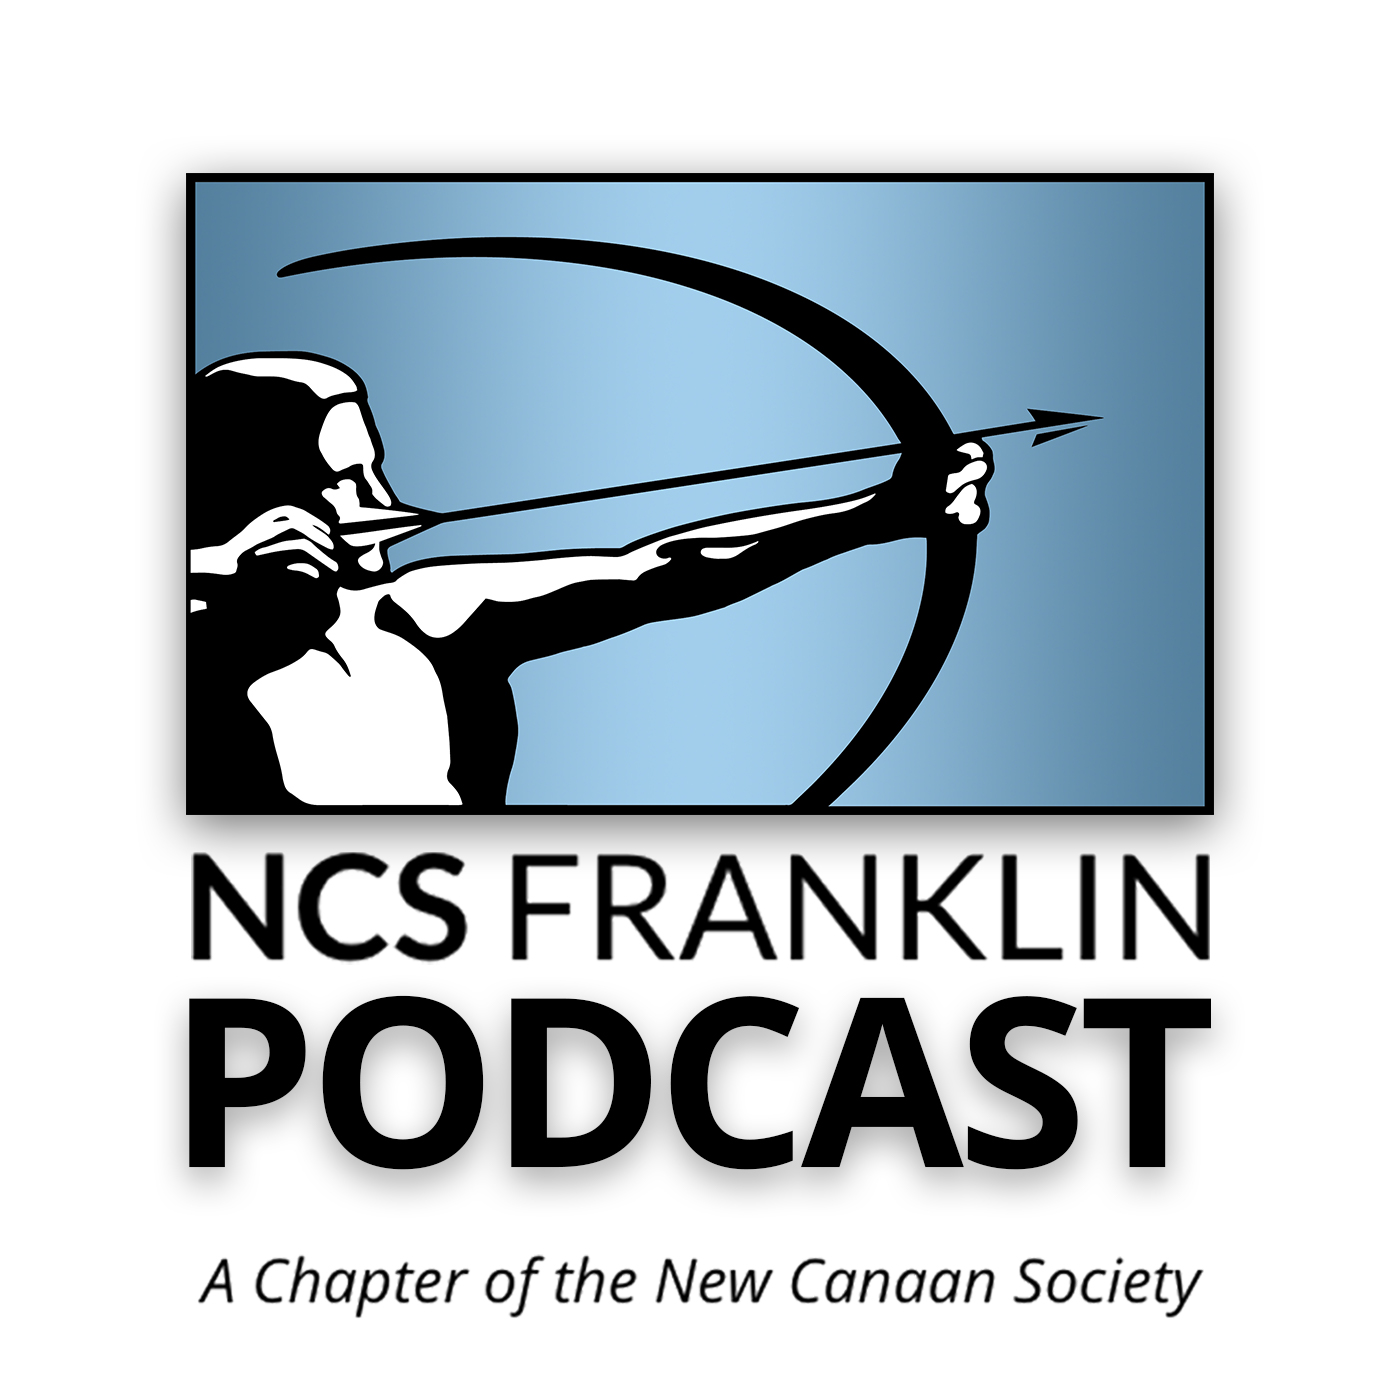 New Canaan Society Franklin Podcast